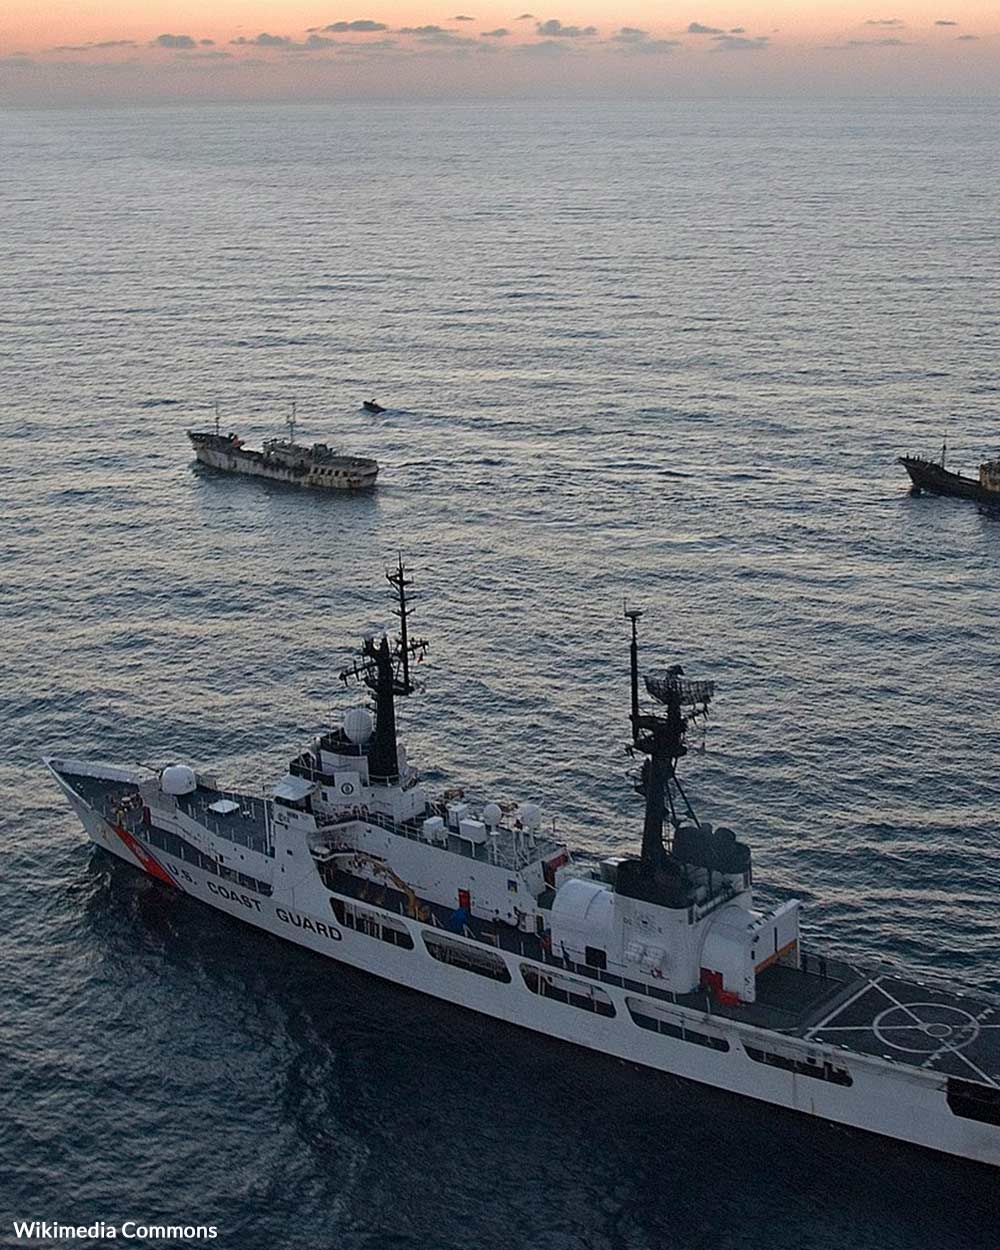 The U.S. Coast Guard Cutter Boutwell transfers custody of the Fishing Vessels Lu Rong Yu 1961 (right) and Zhe Dai Yuan Yu 829 (left) to a Chinese Fisheries Law Enforcement Command (FLEC) cutter after being interdicted for use of illegal high seas drift net fishing equipment.